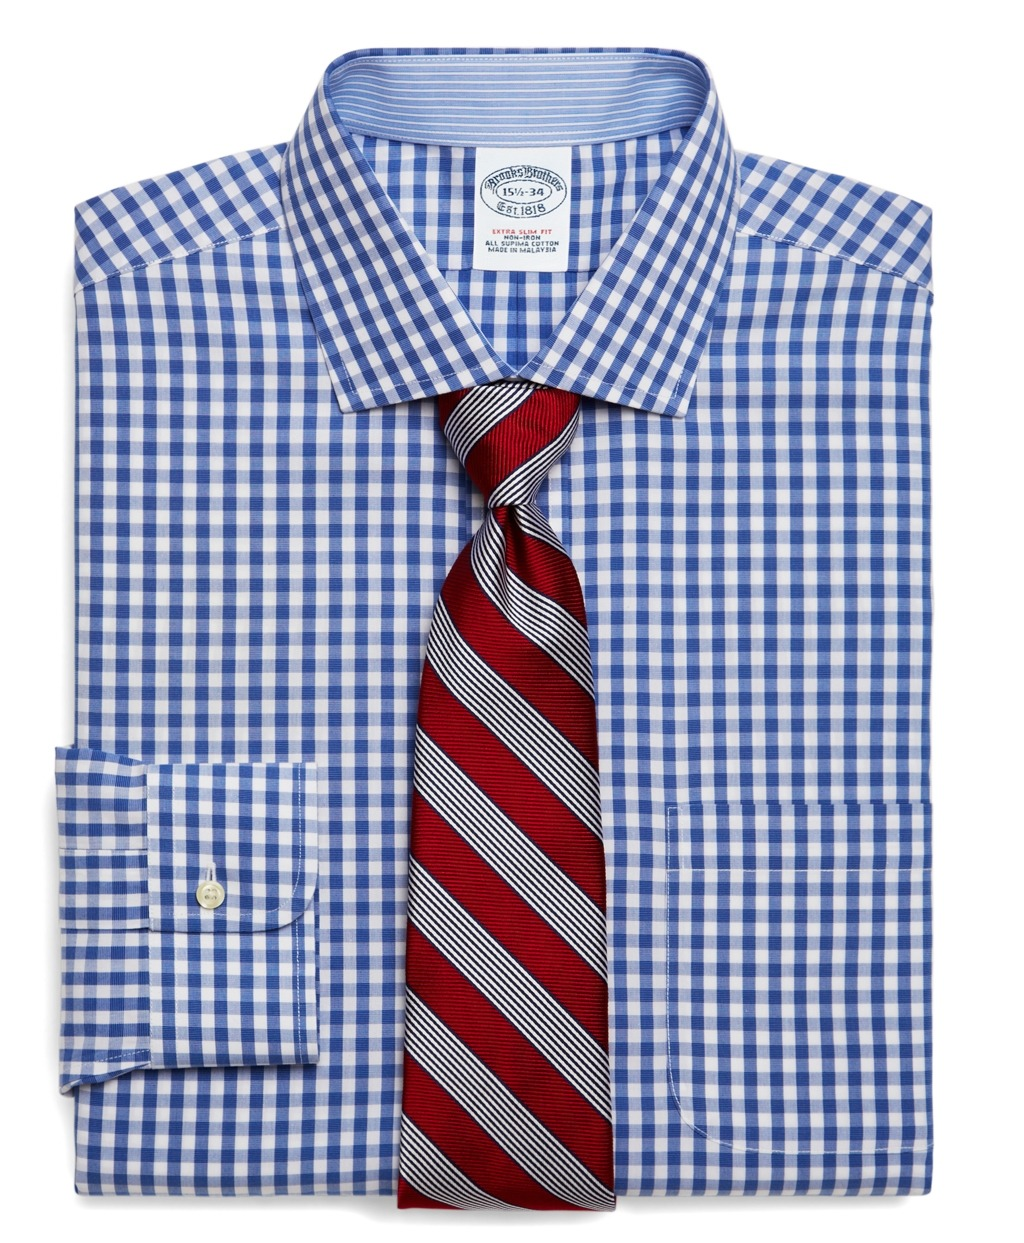 Gingham dress shirt at Brooks Brothers